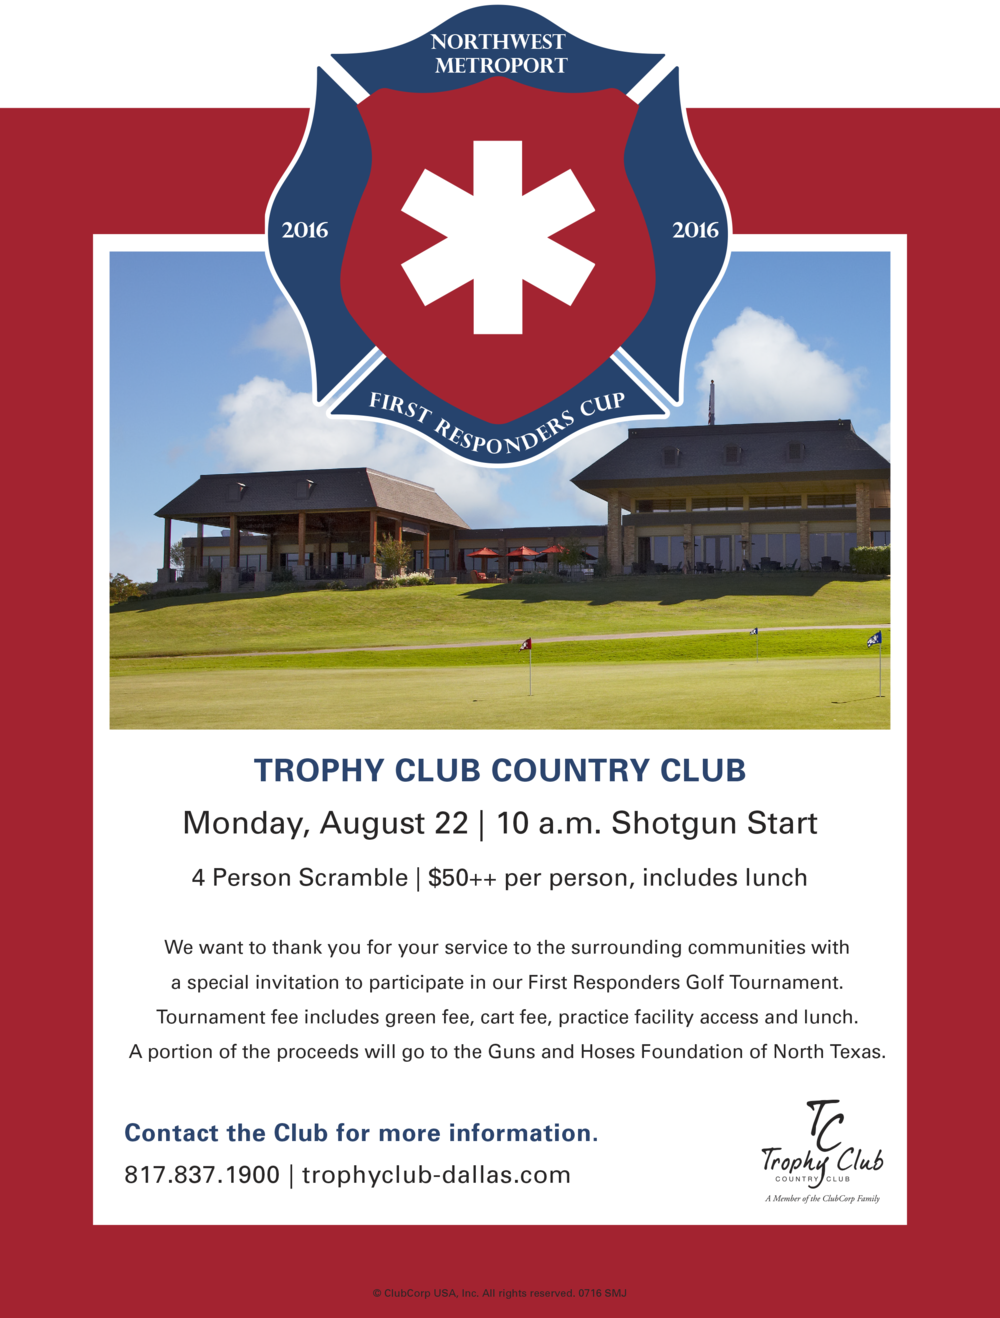 FINAL TrophyClub-FirstResponder-Tournament-FLY (5).png